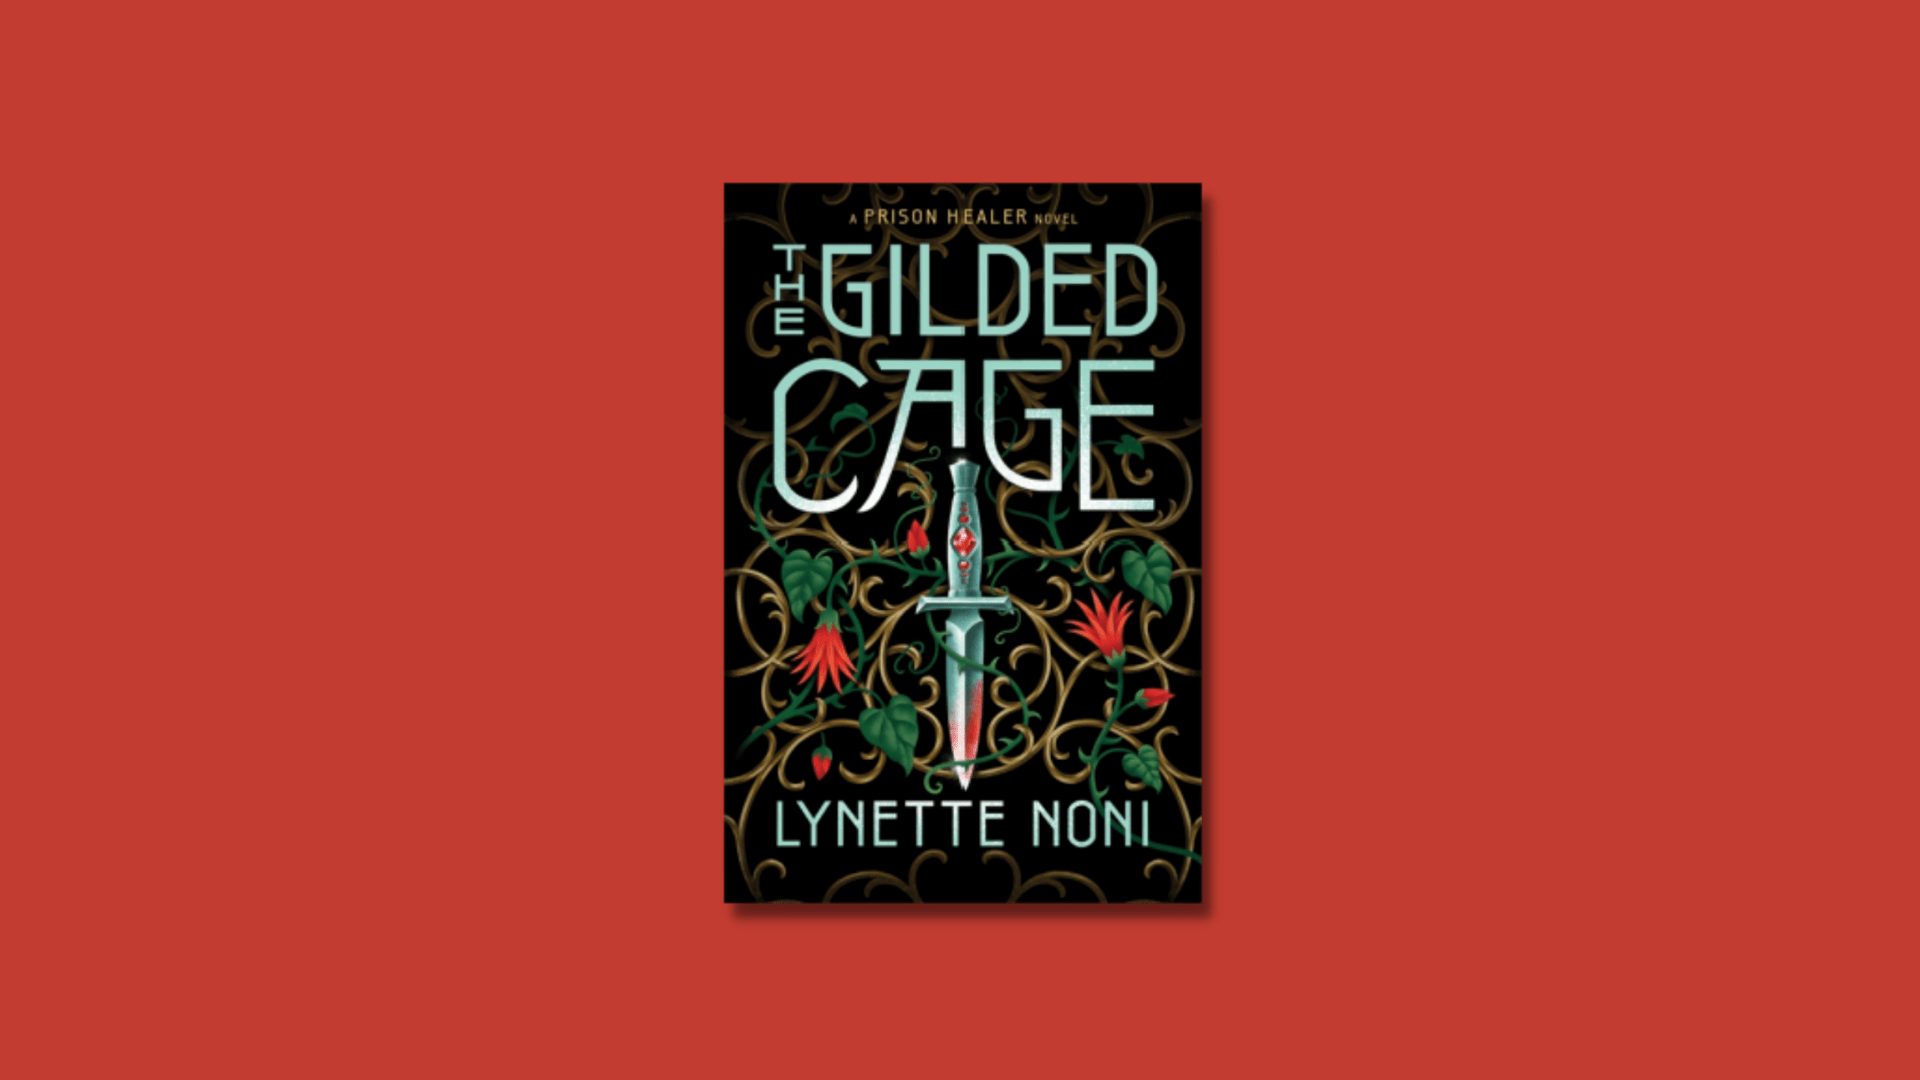 The cover of The Gilded Cage by Lynette Noni against an orangy/red background